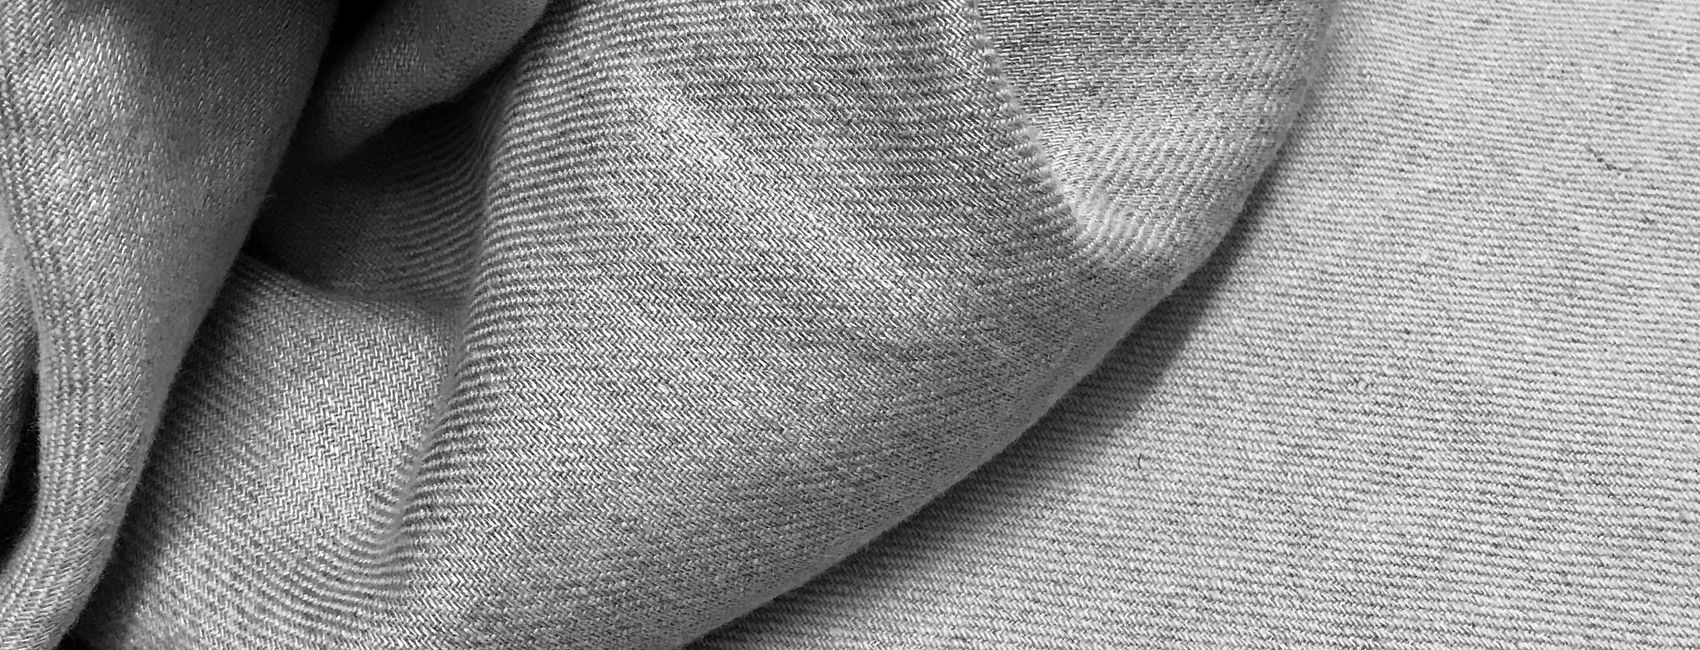 726 - Linen and virgin wool